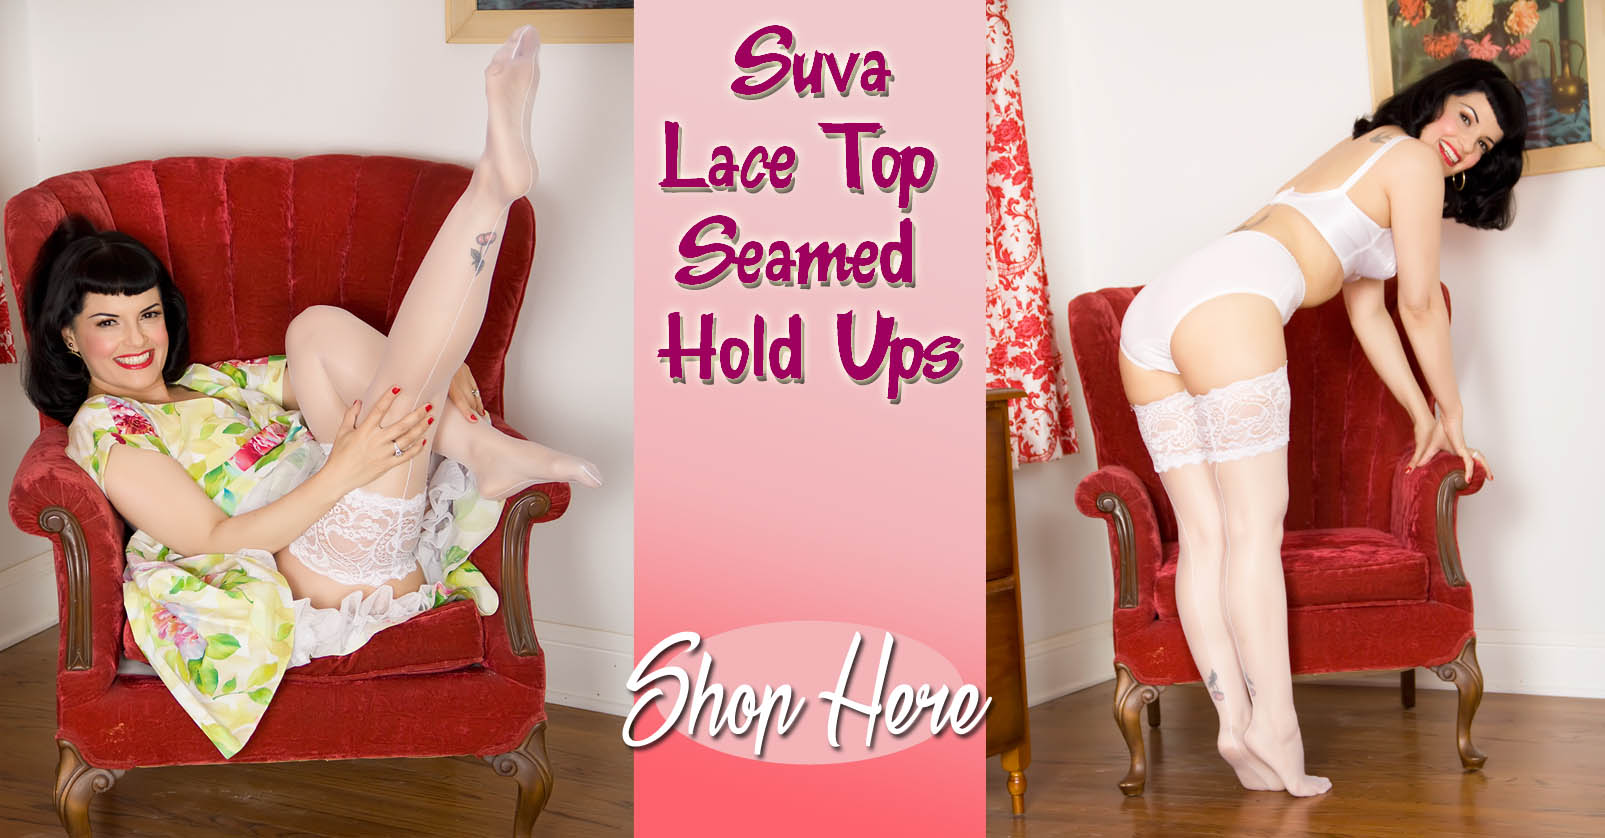 Suva Lace Top Seamed Hold Ups